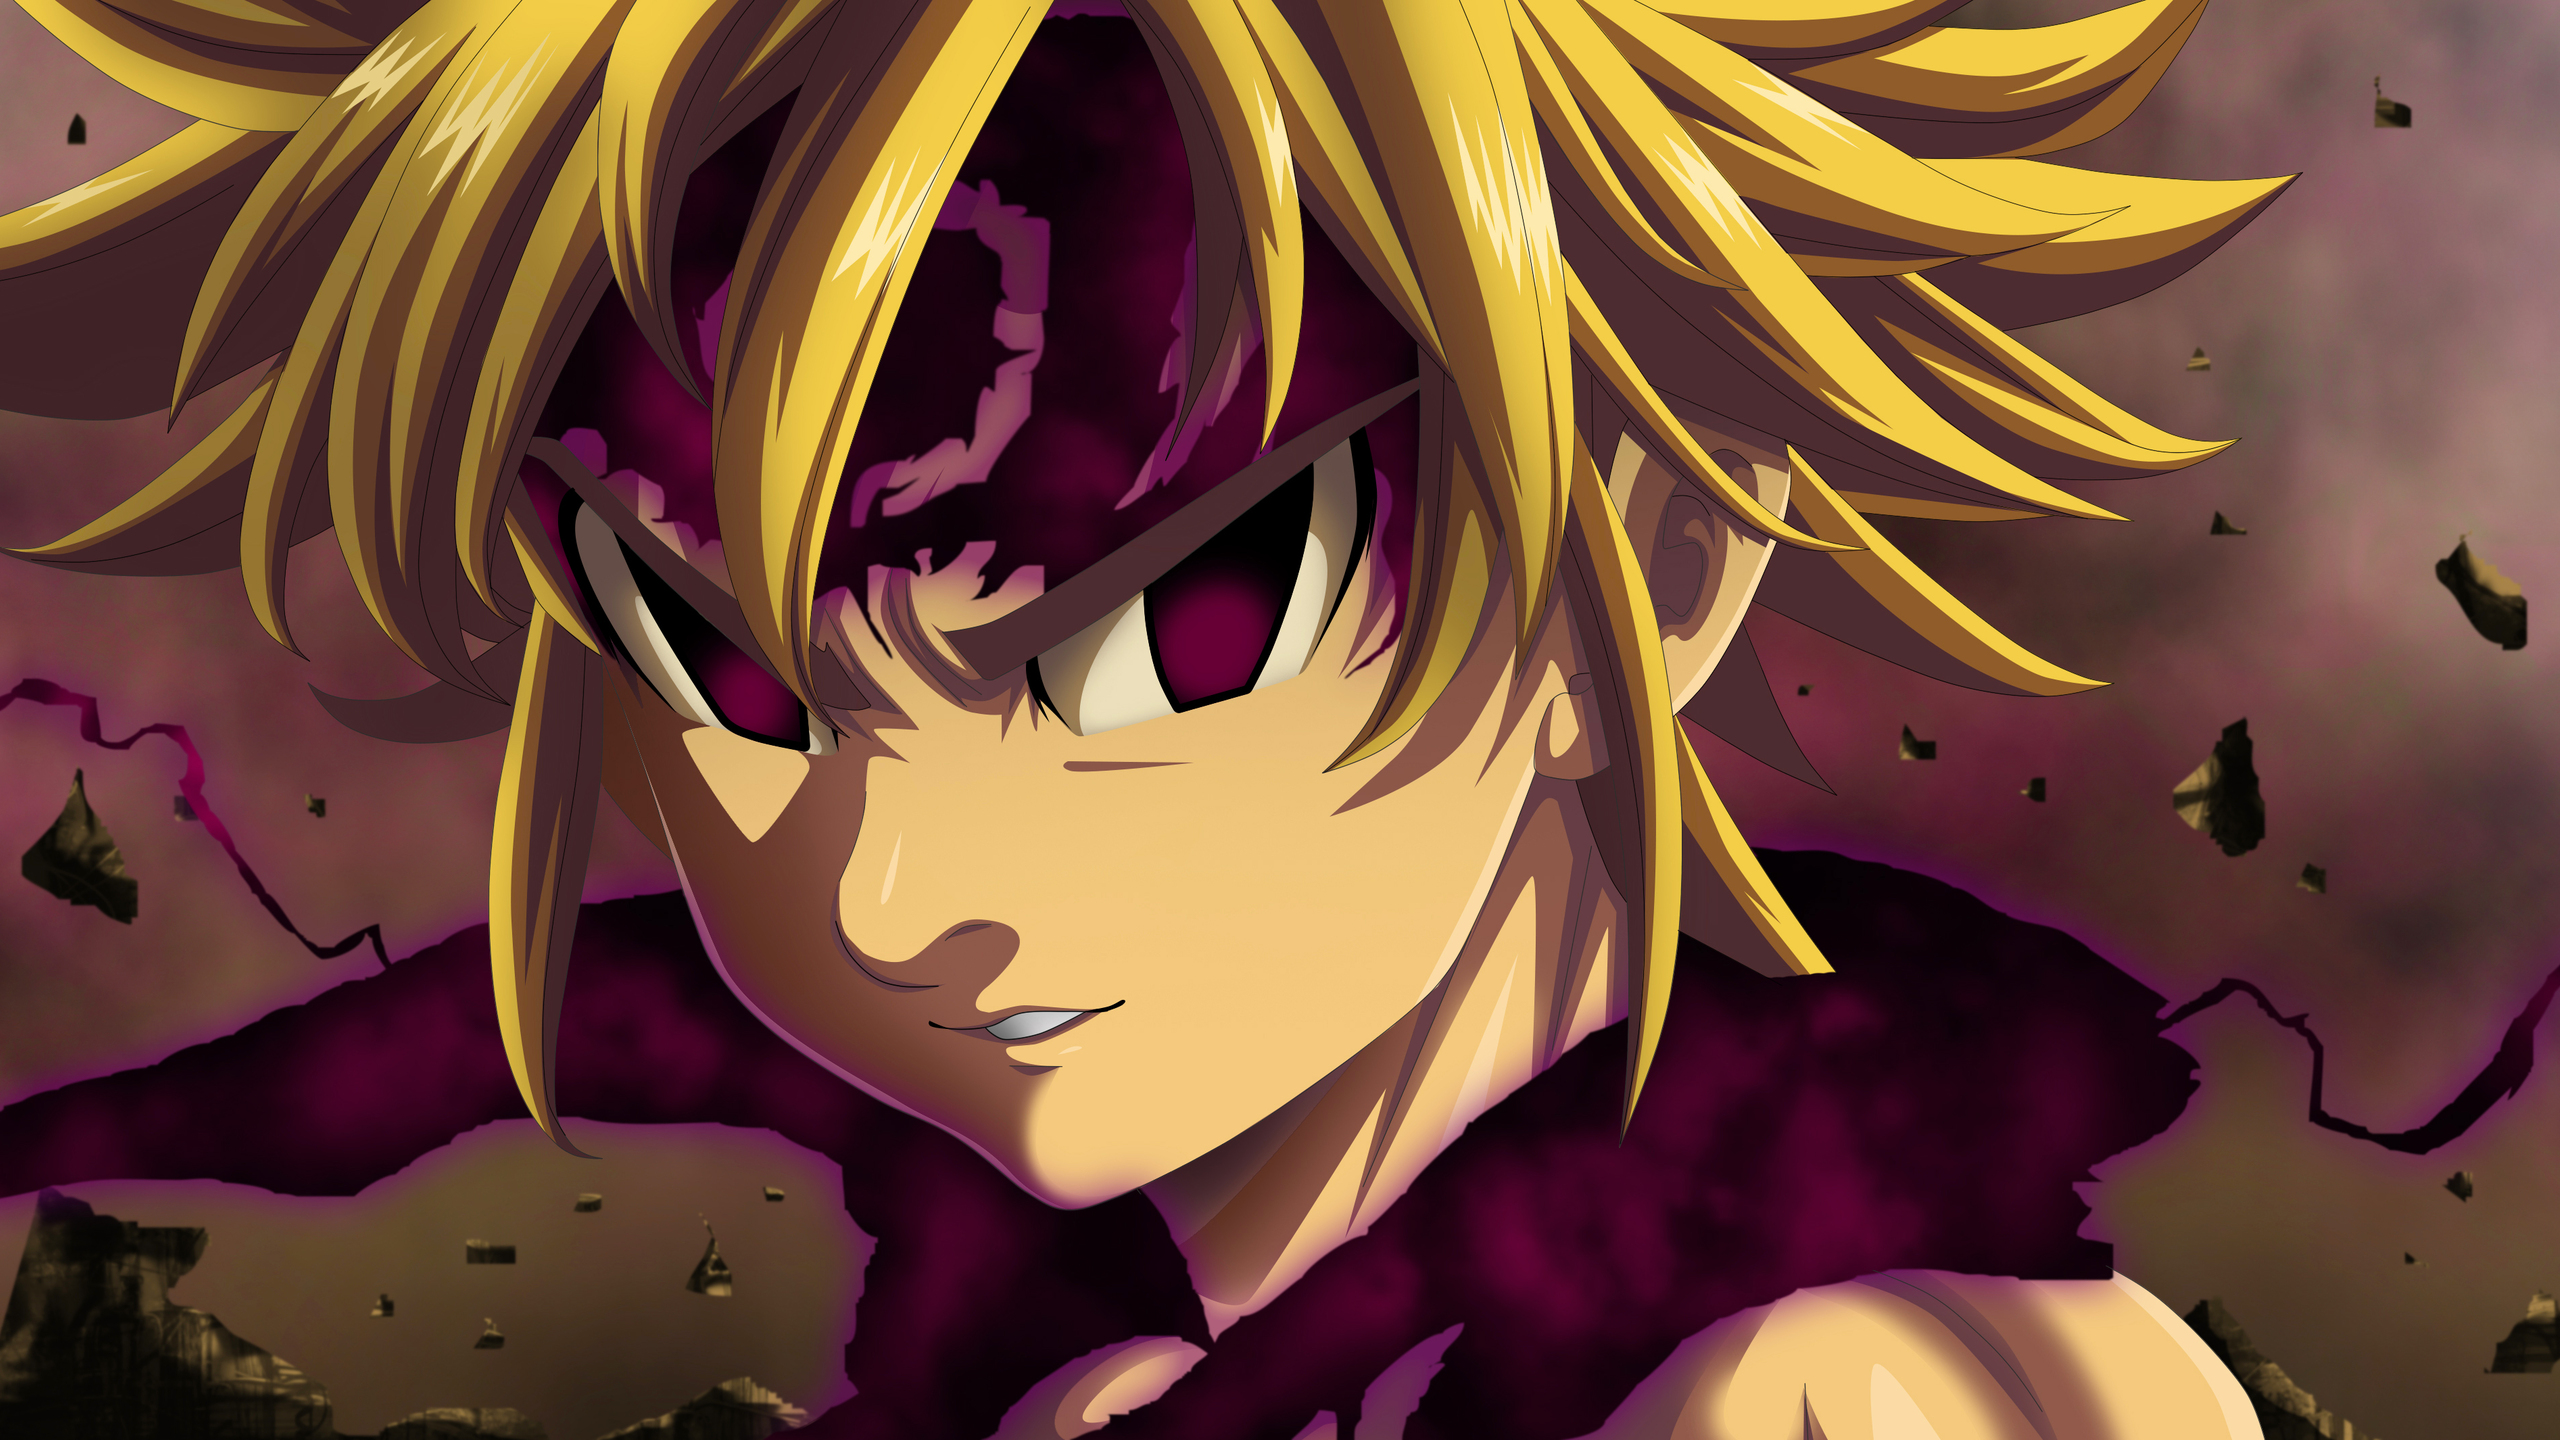 2560x1440 The Seven Deadly Sins 1440p Resolution Hd 4k Wallpapers